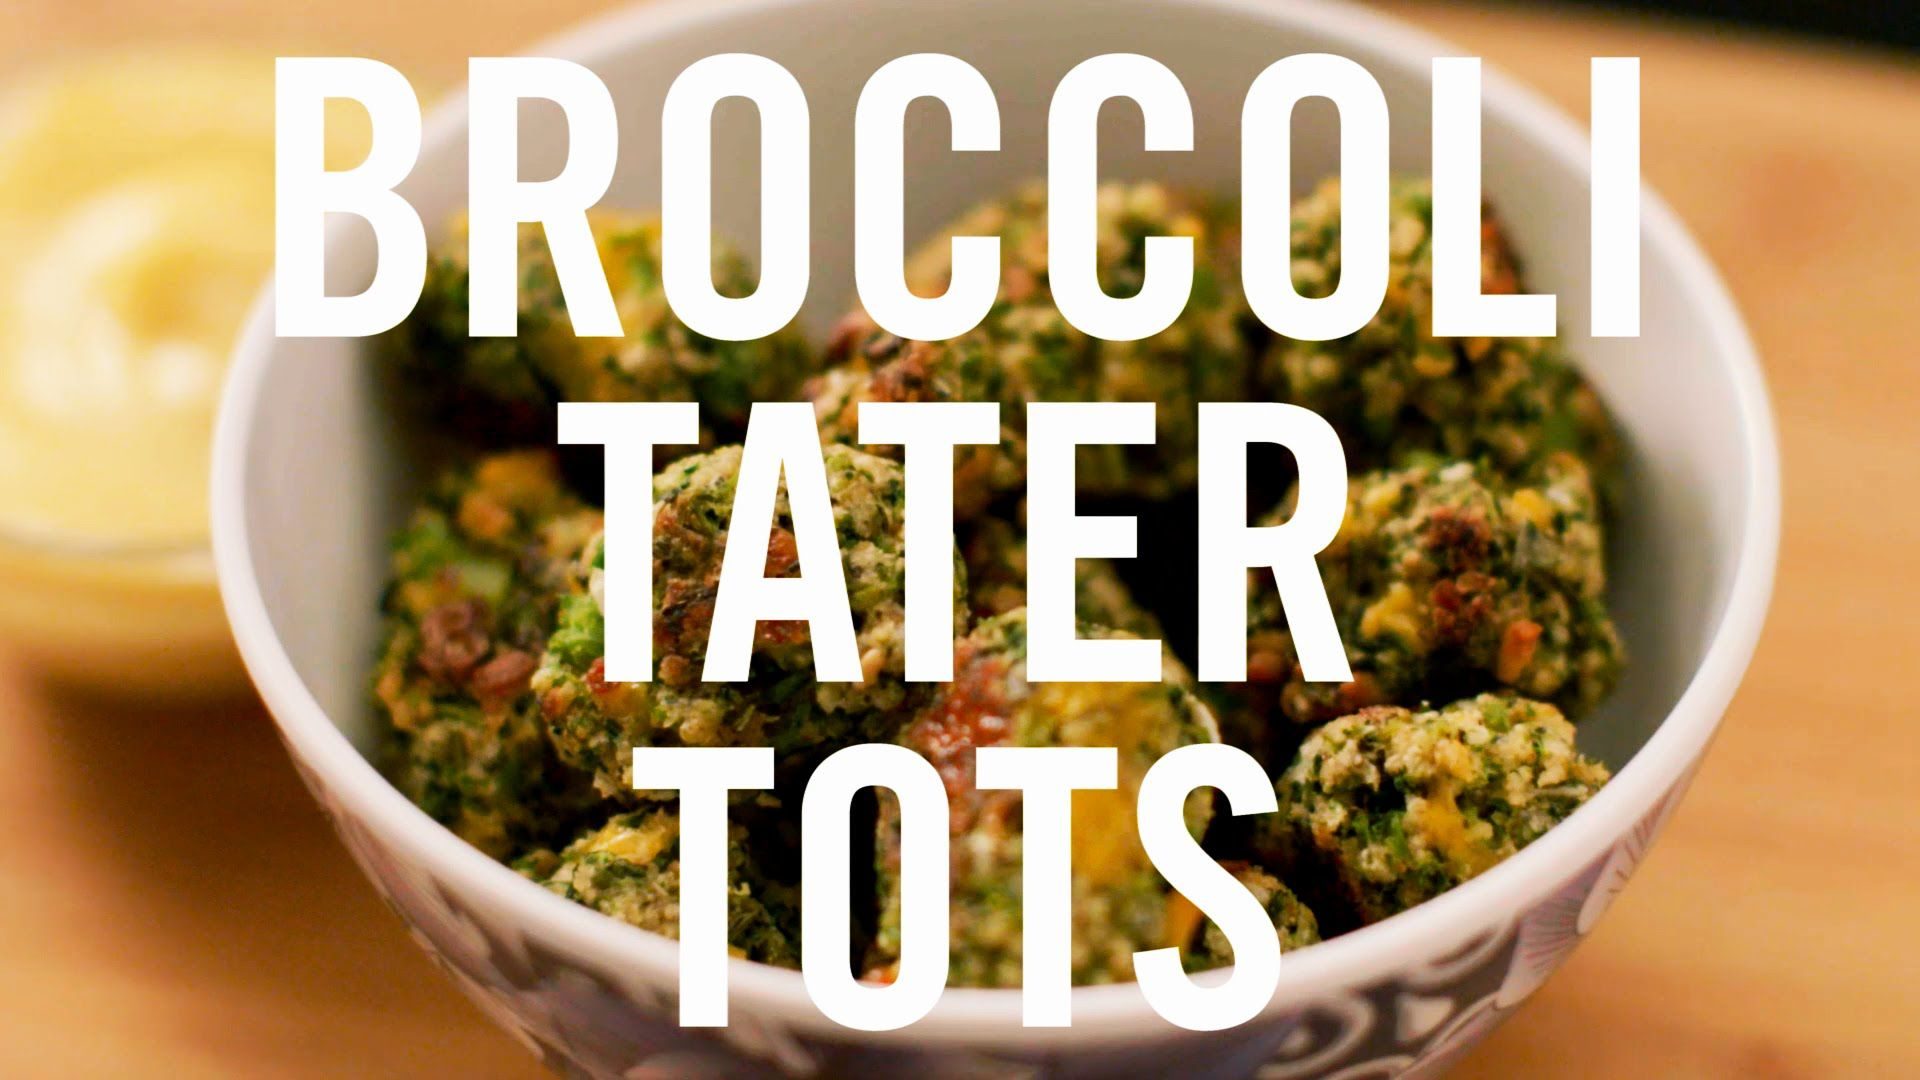 The addictive tater tots from your childhood are back with a new spin! Treat yourself to these scrumptious, snackable bites that are both hearty and healthy. Mix broccoli with cheese, breadcrumbs, and seasonings to pack a satisfying mouthful of crunchy goodness.